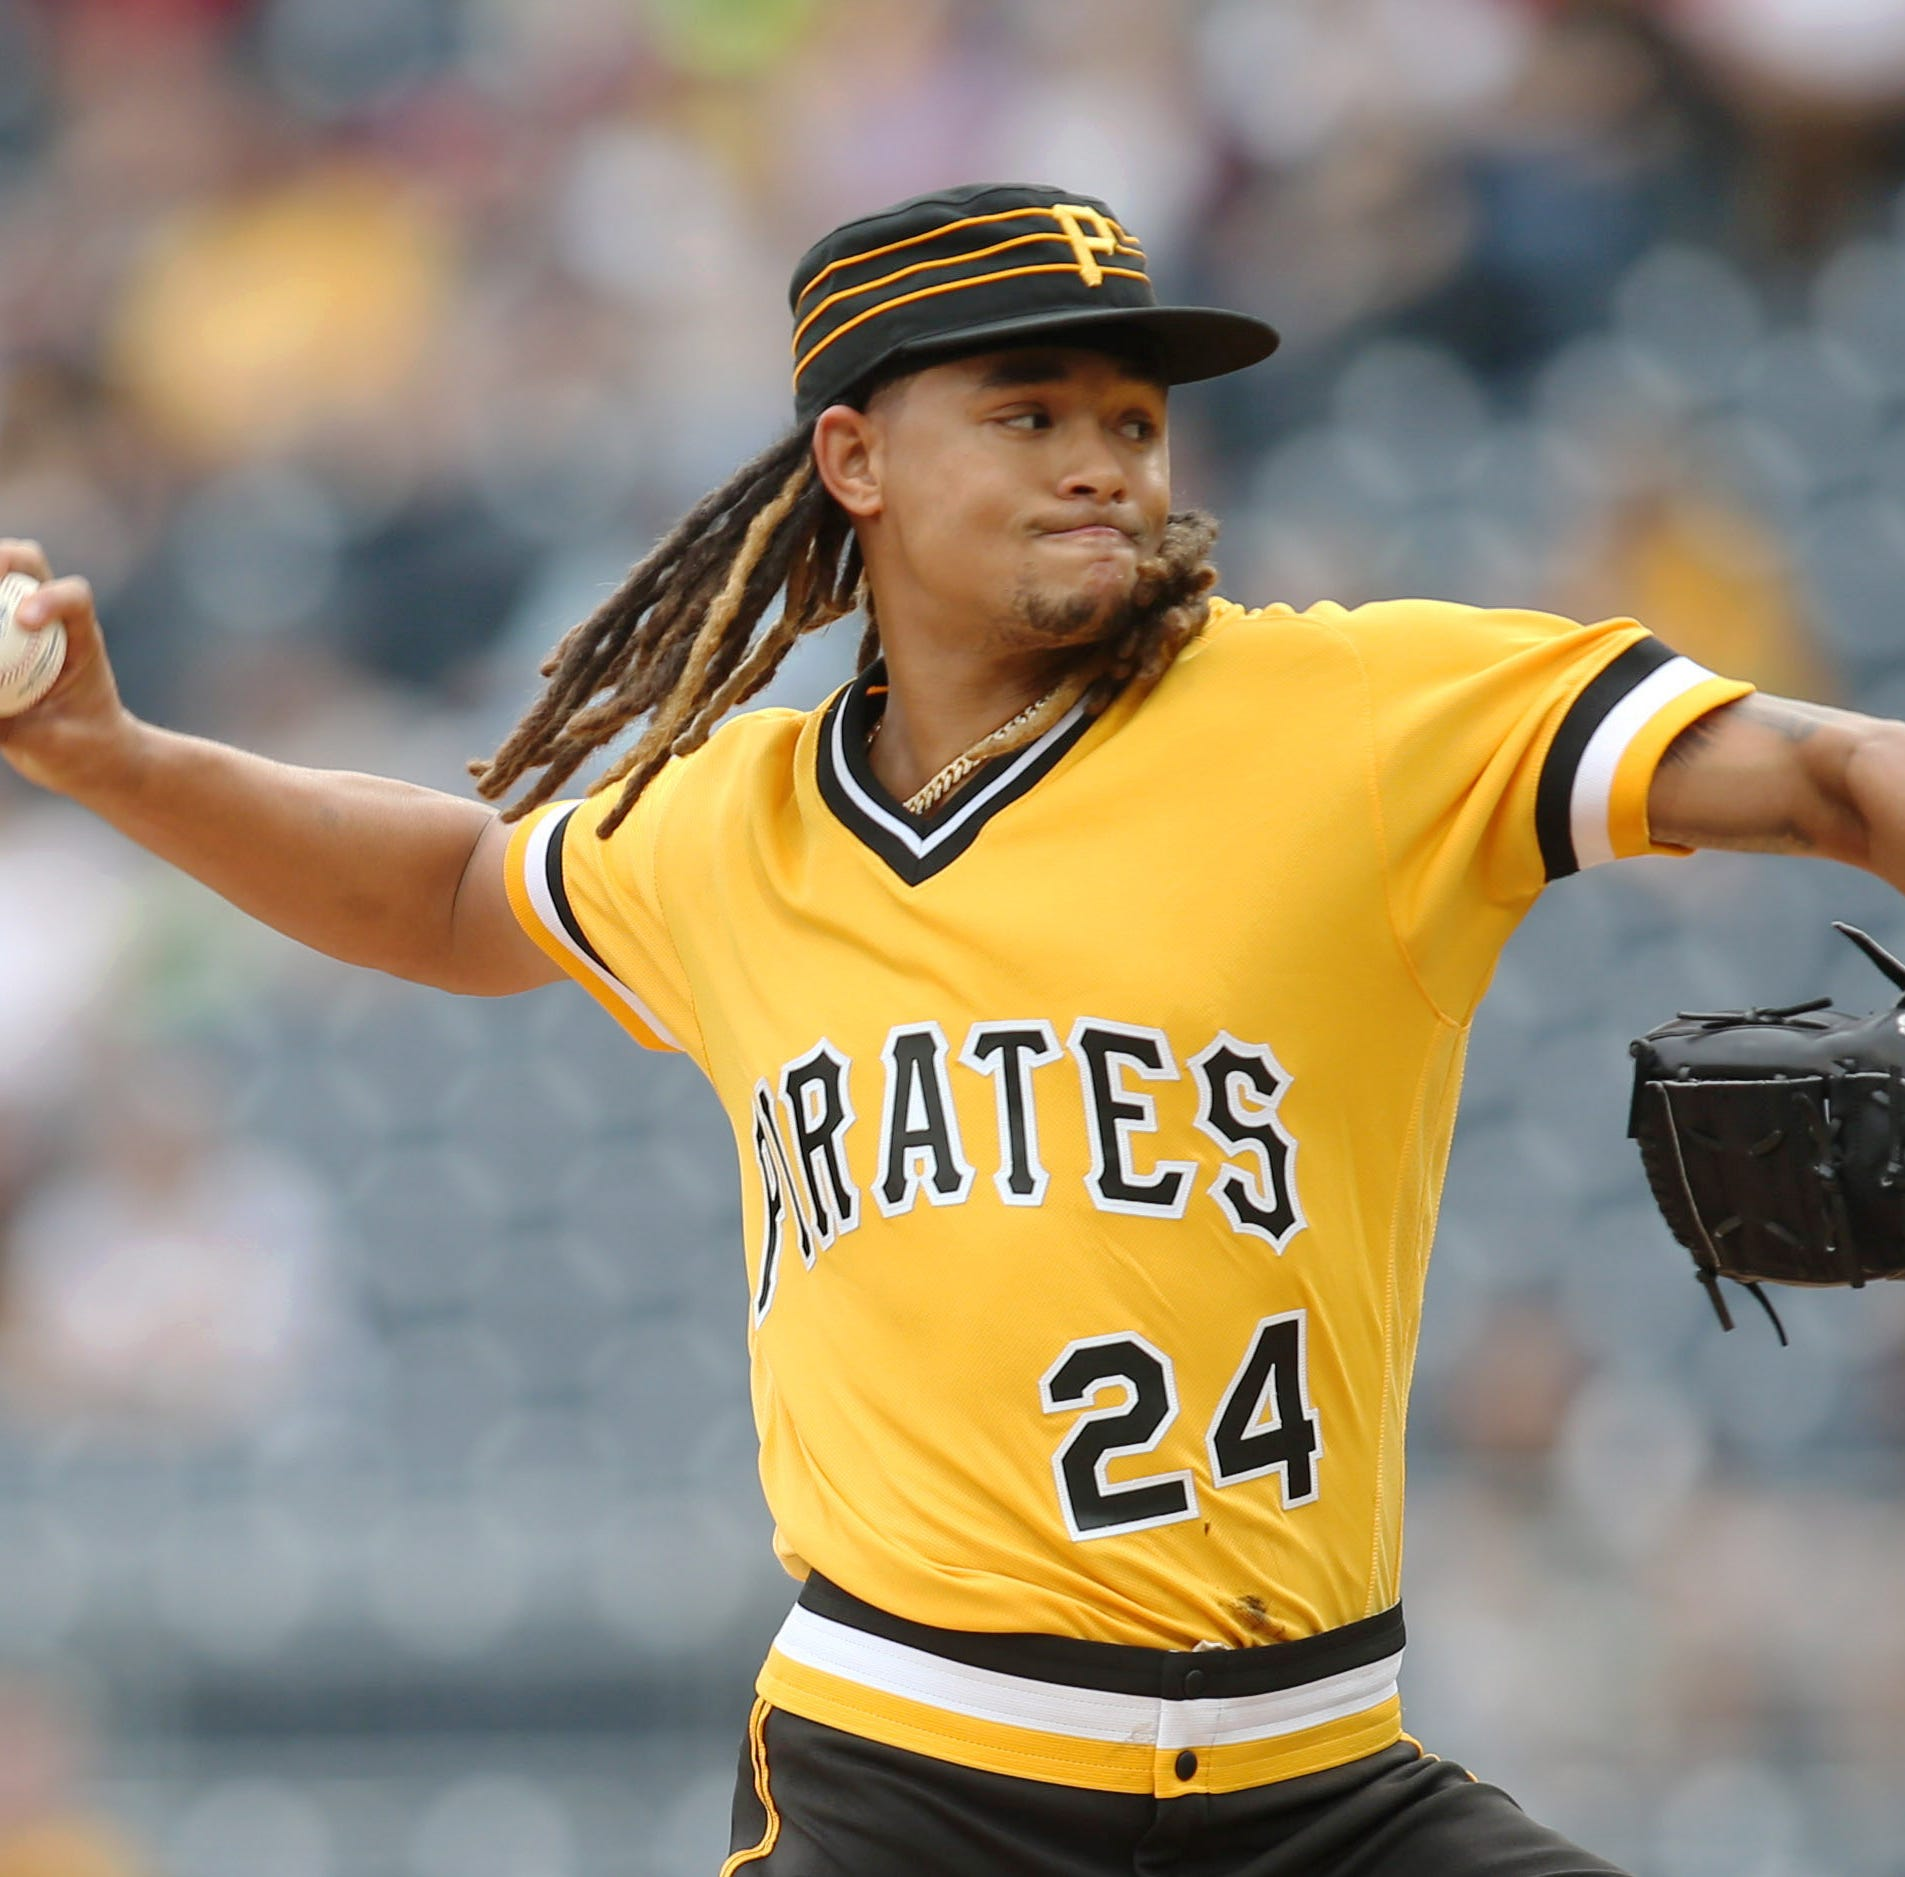 Chris Welsh on Fox Sports Ohio: Chris Archer used pine tar on jersey for certain pitches